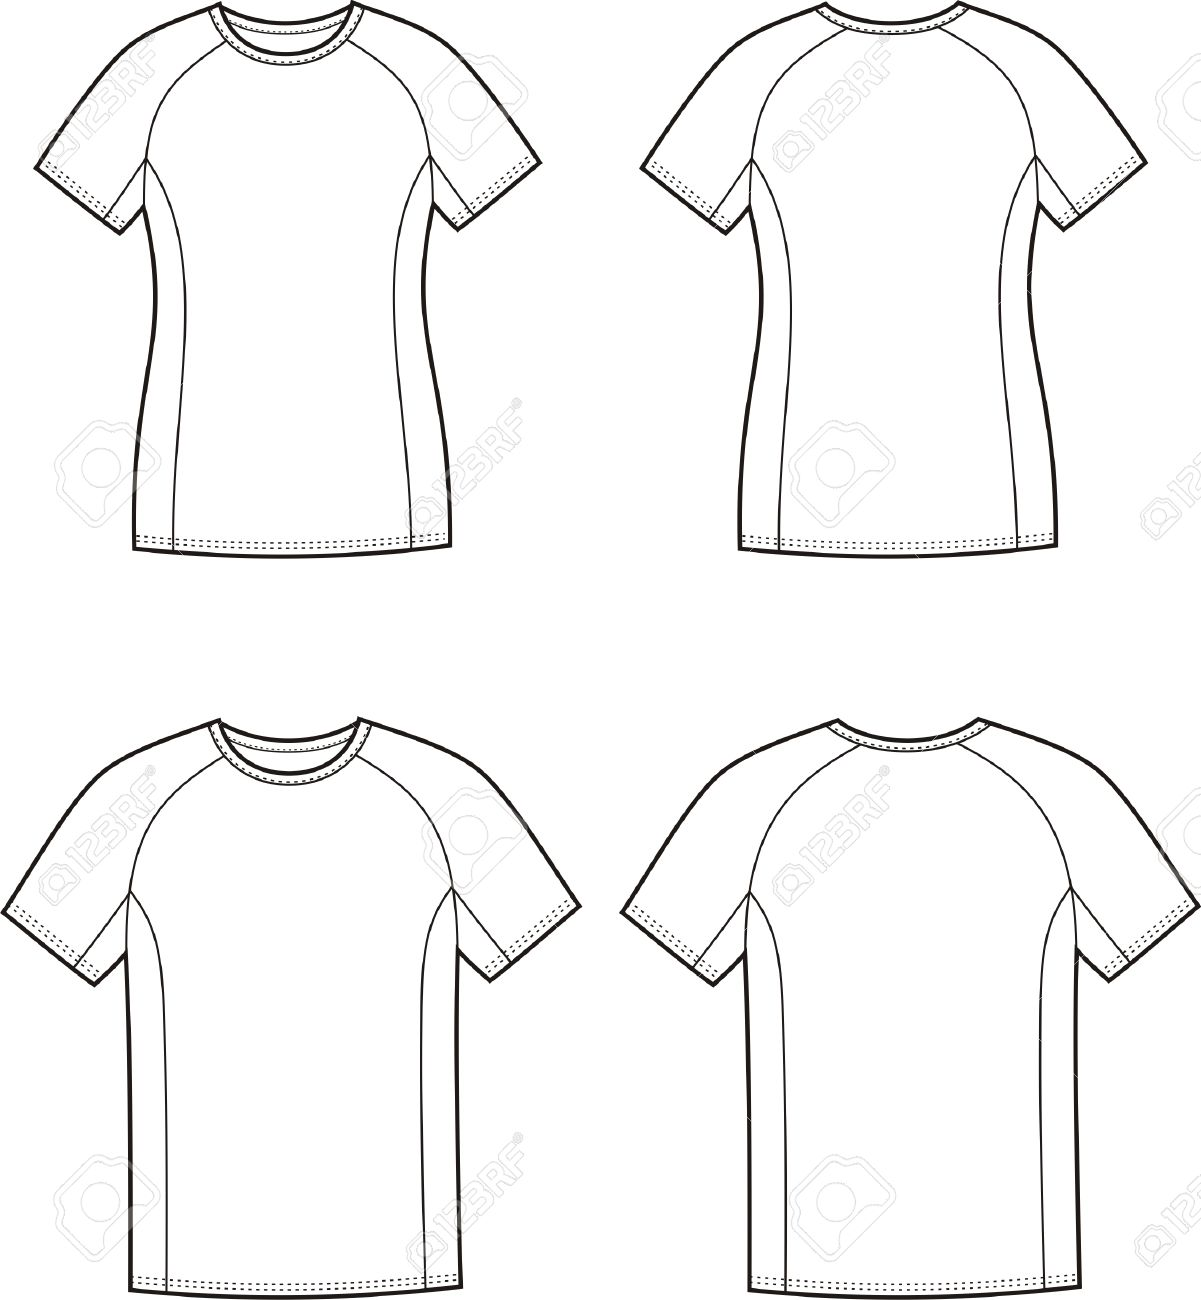 Black t shirt vector front and back - Vector Illustration Of Mens And Womens Sport T Shirt Front And Back Views Stock